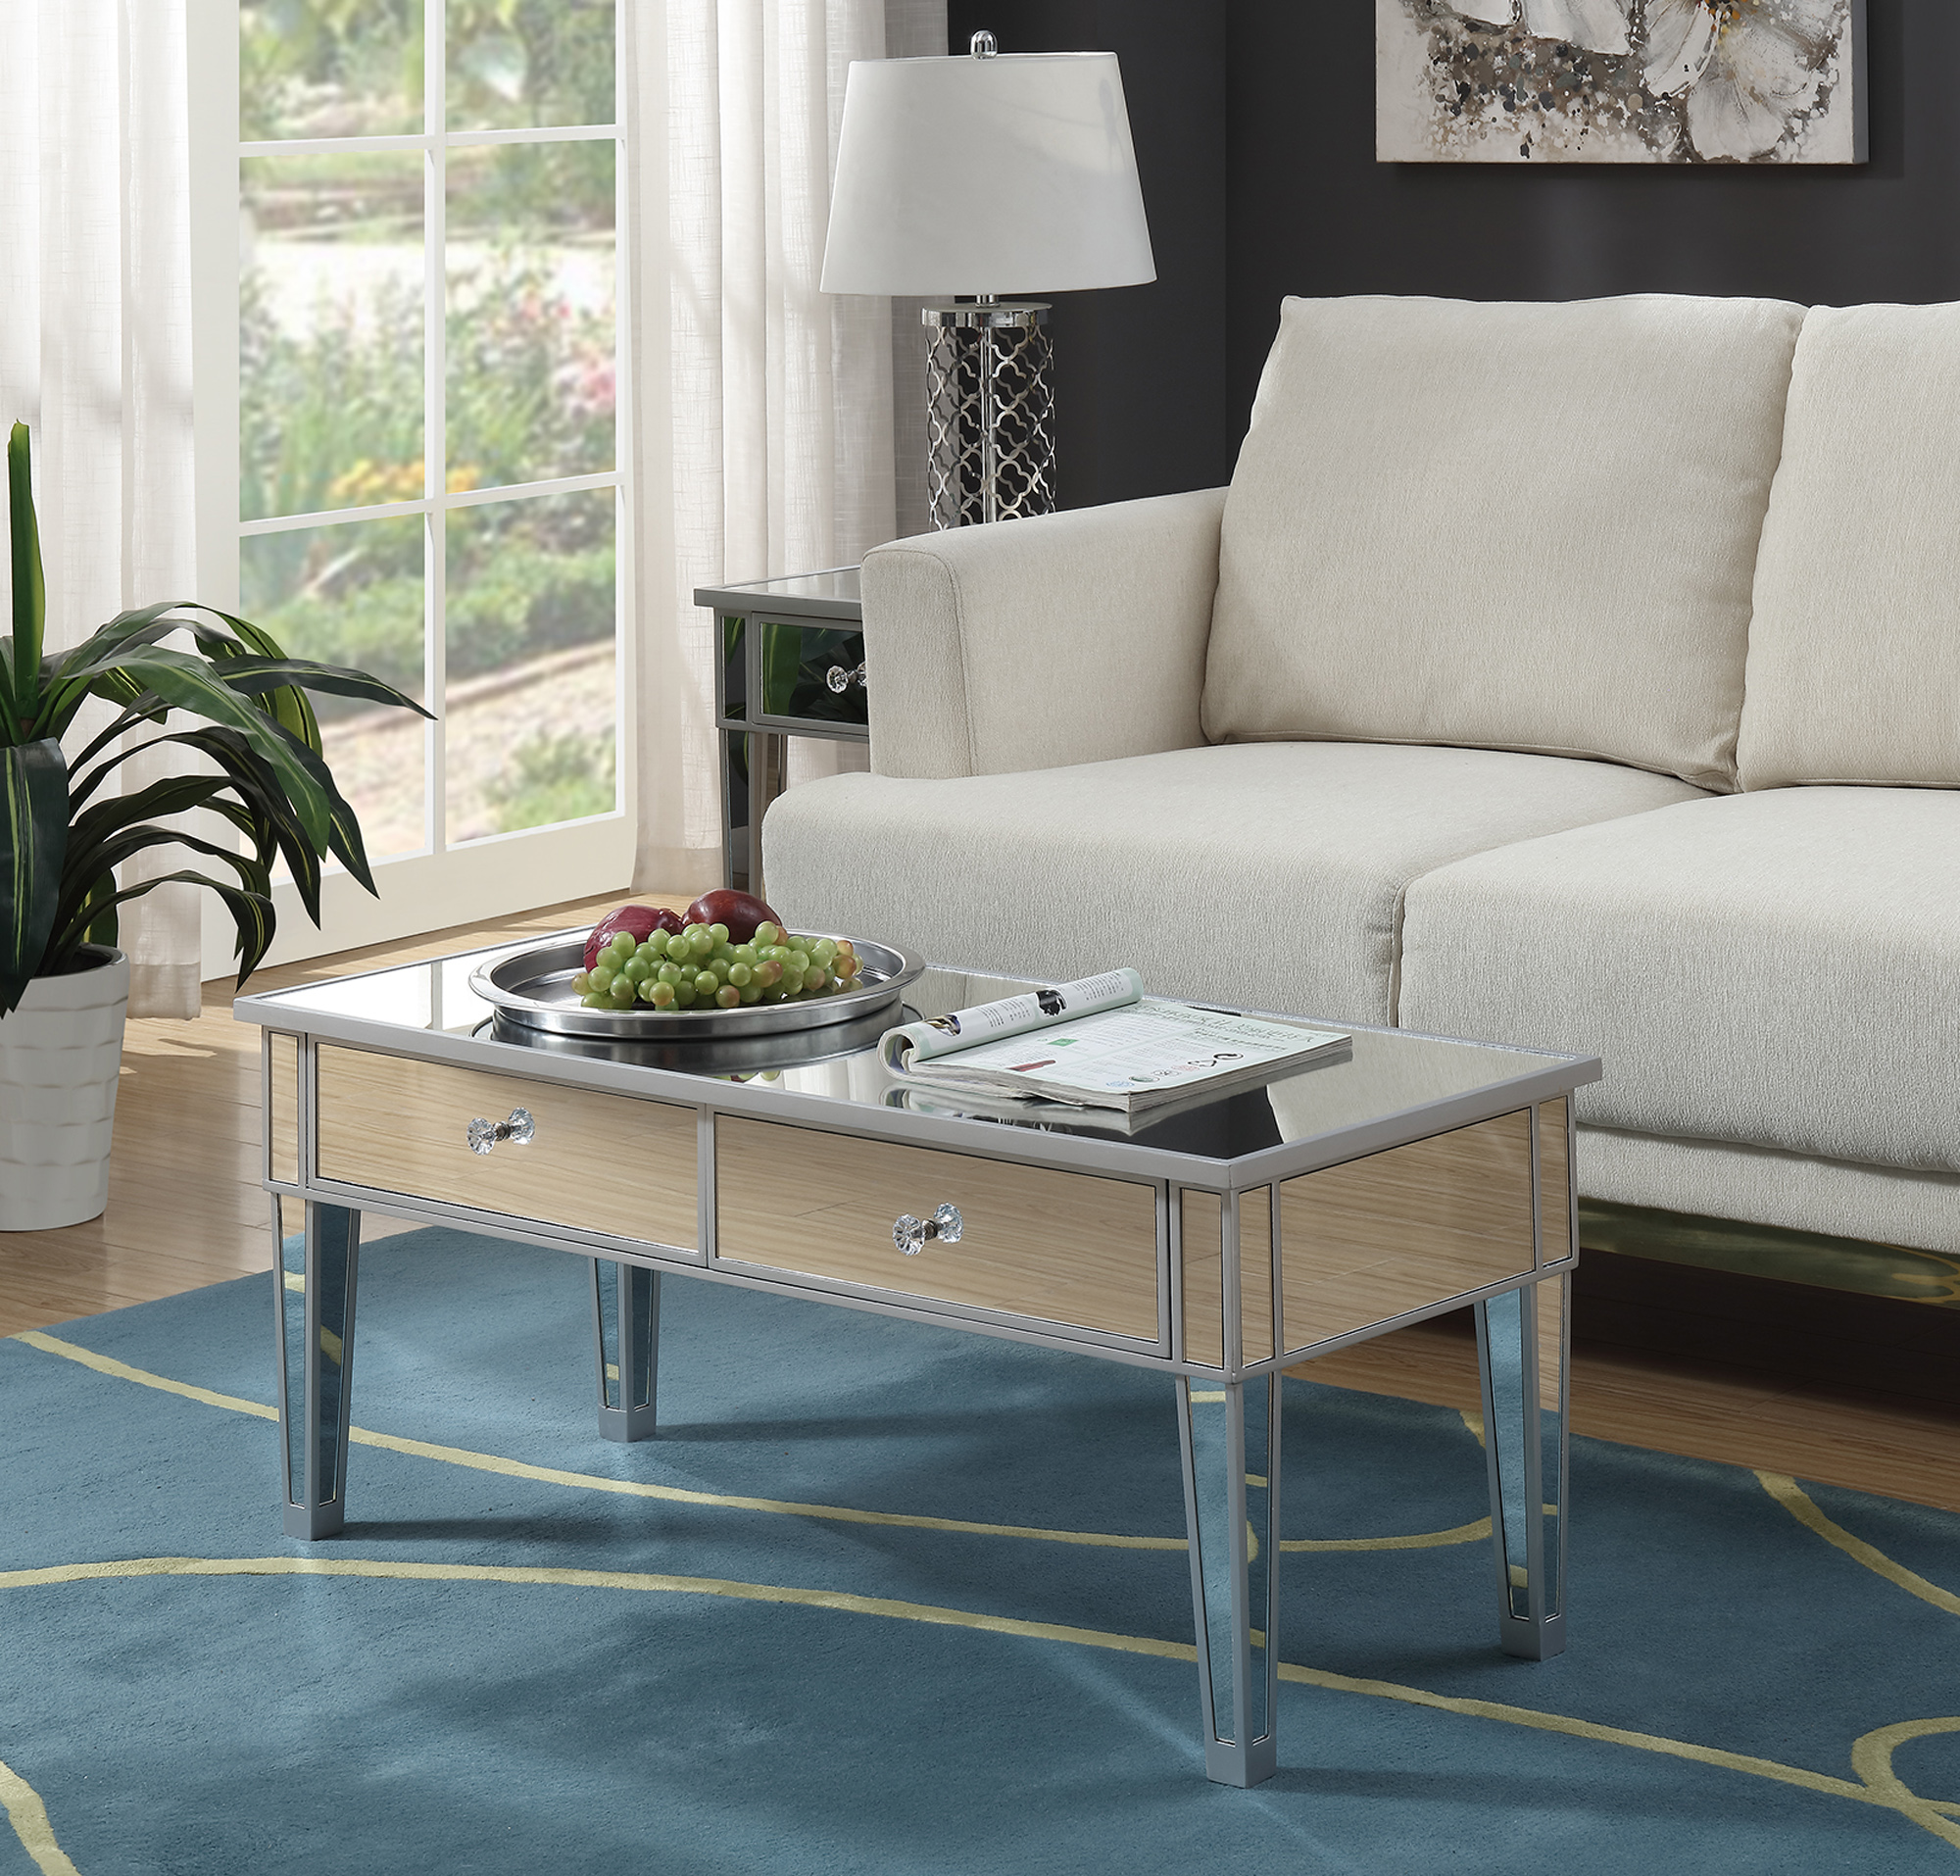 Convenience Concepts Gold Coast Mirror Coffee Table With Two Drawers Walmart Com Walmart Com